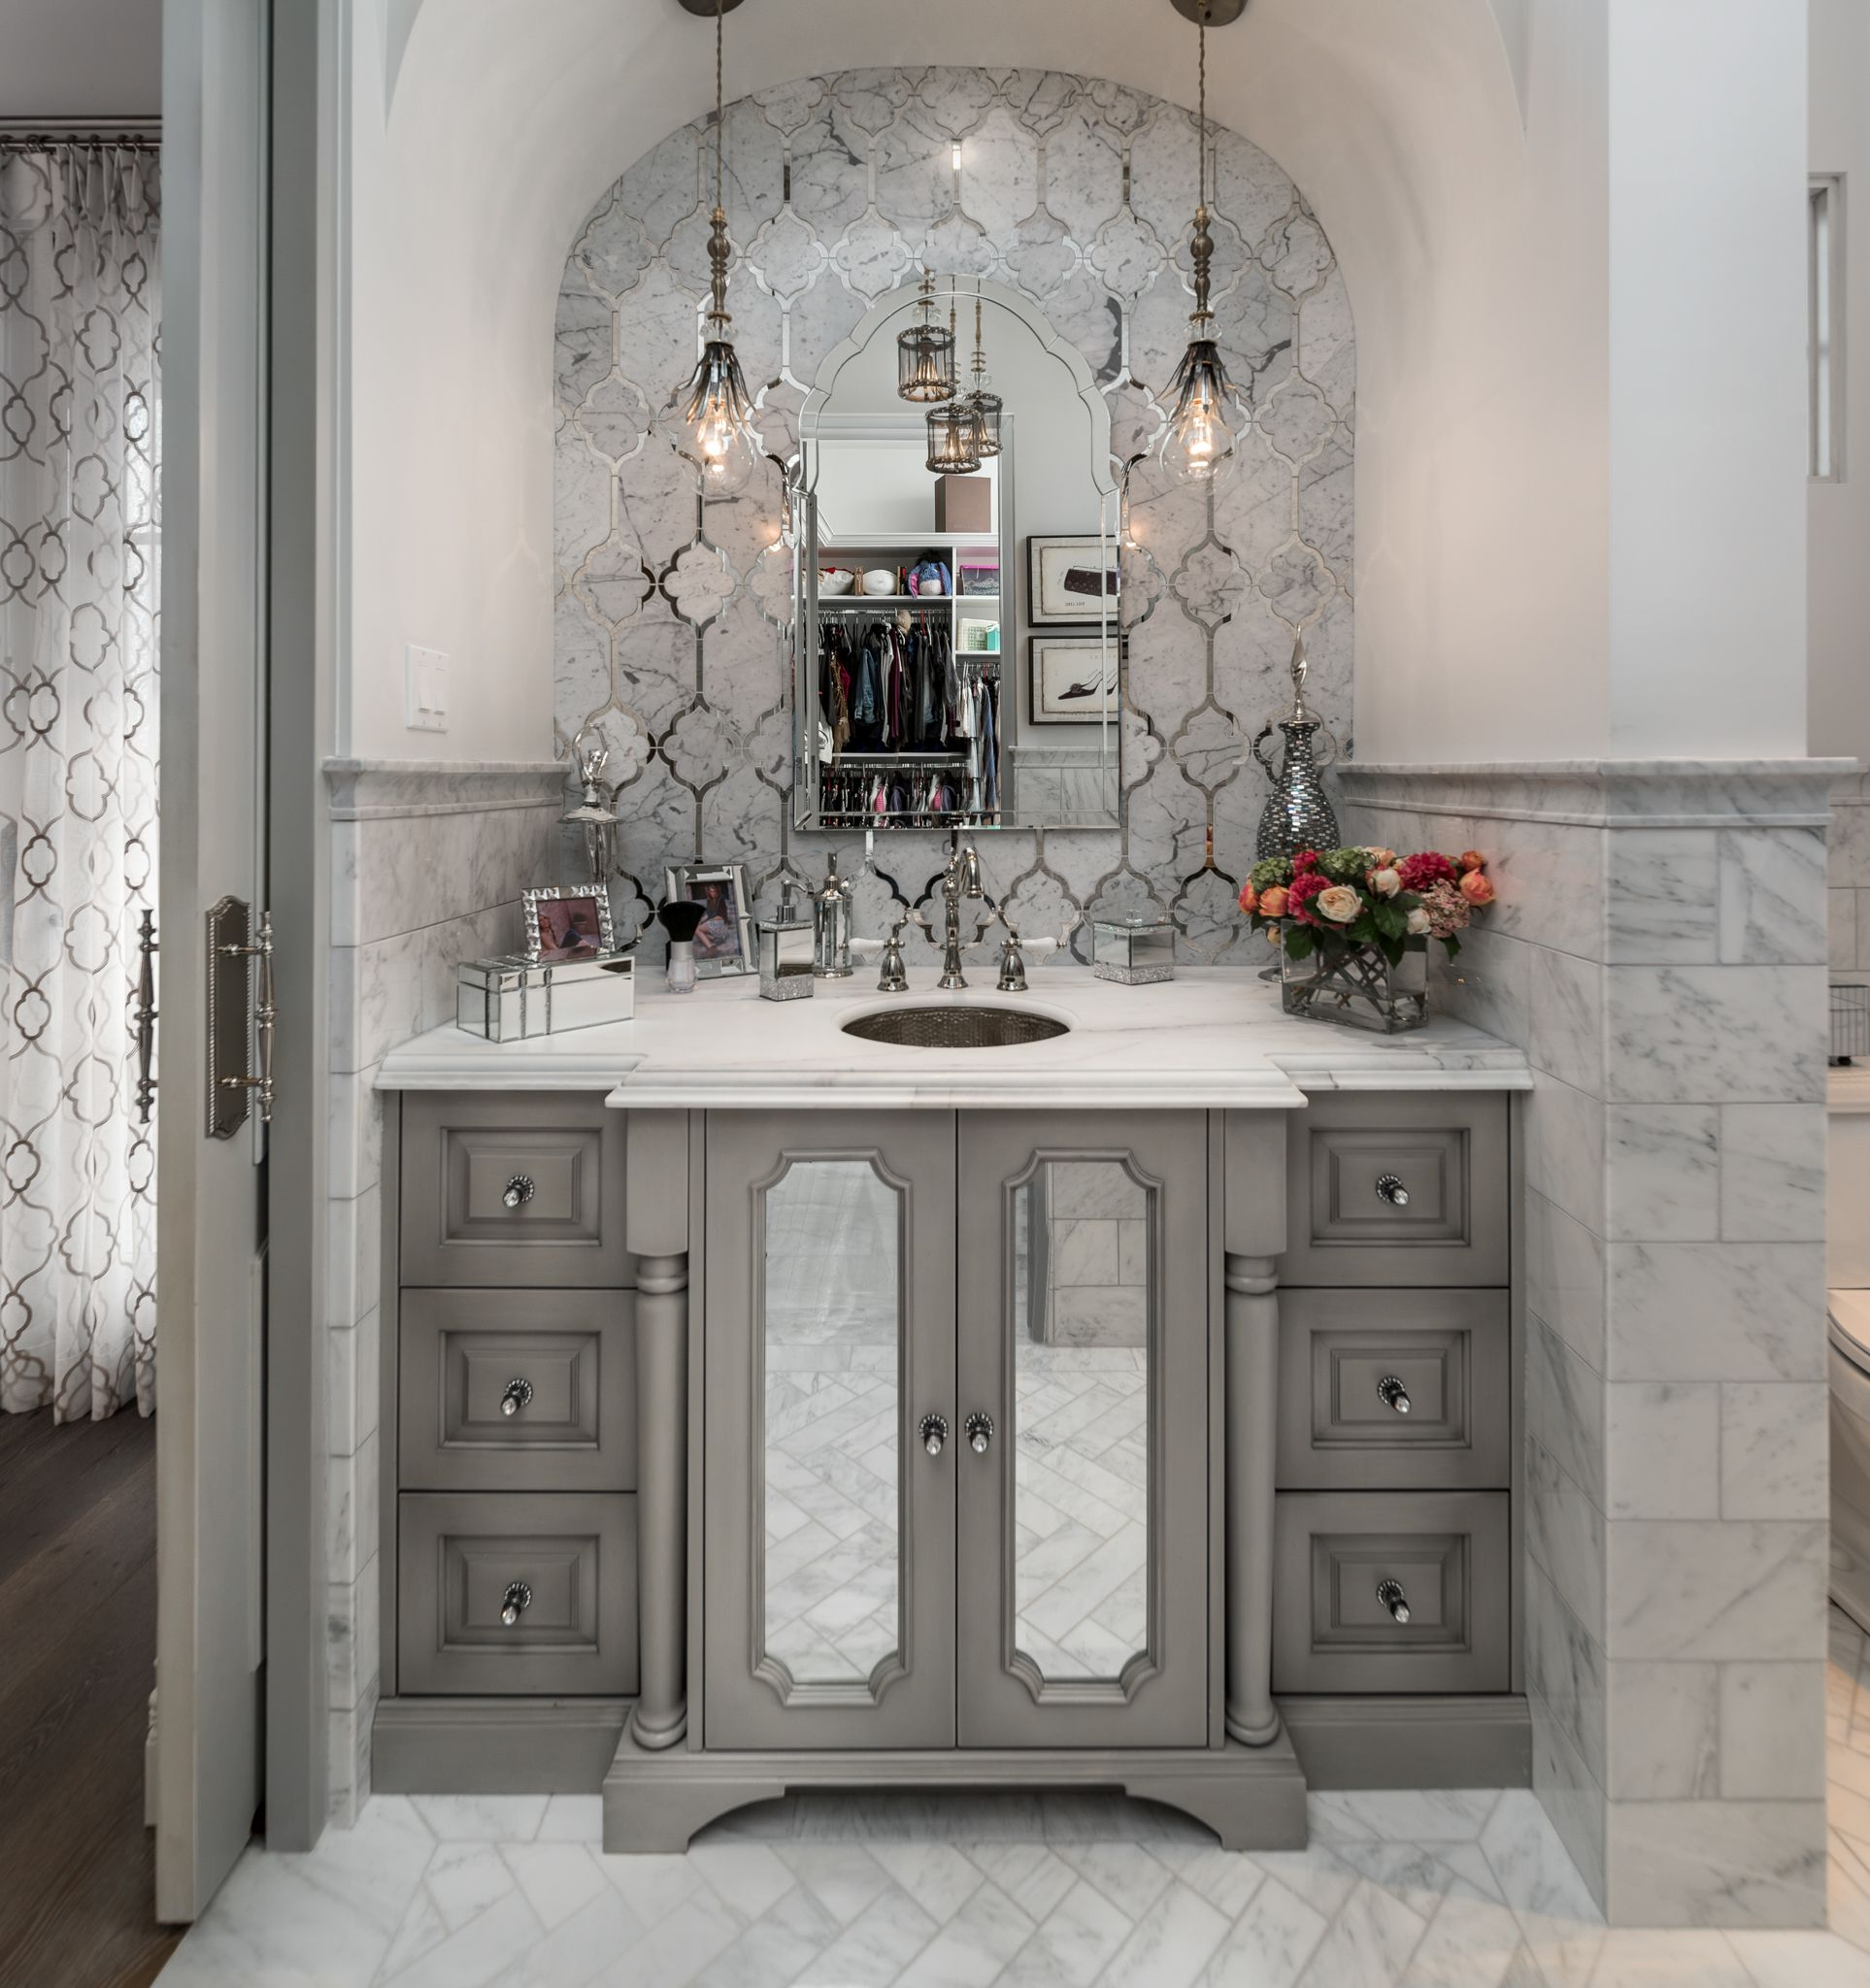 The Luxury Interior On Instagram Amazing Kitchen: Bathroom Vanity Designs, Amazing Bathrooms